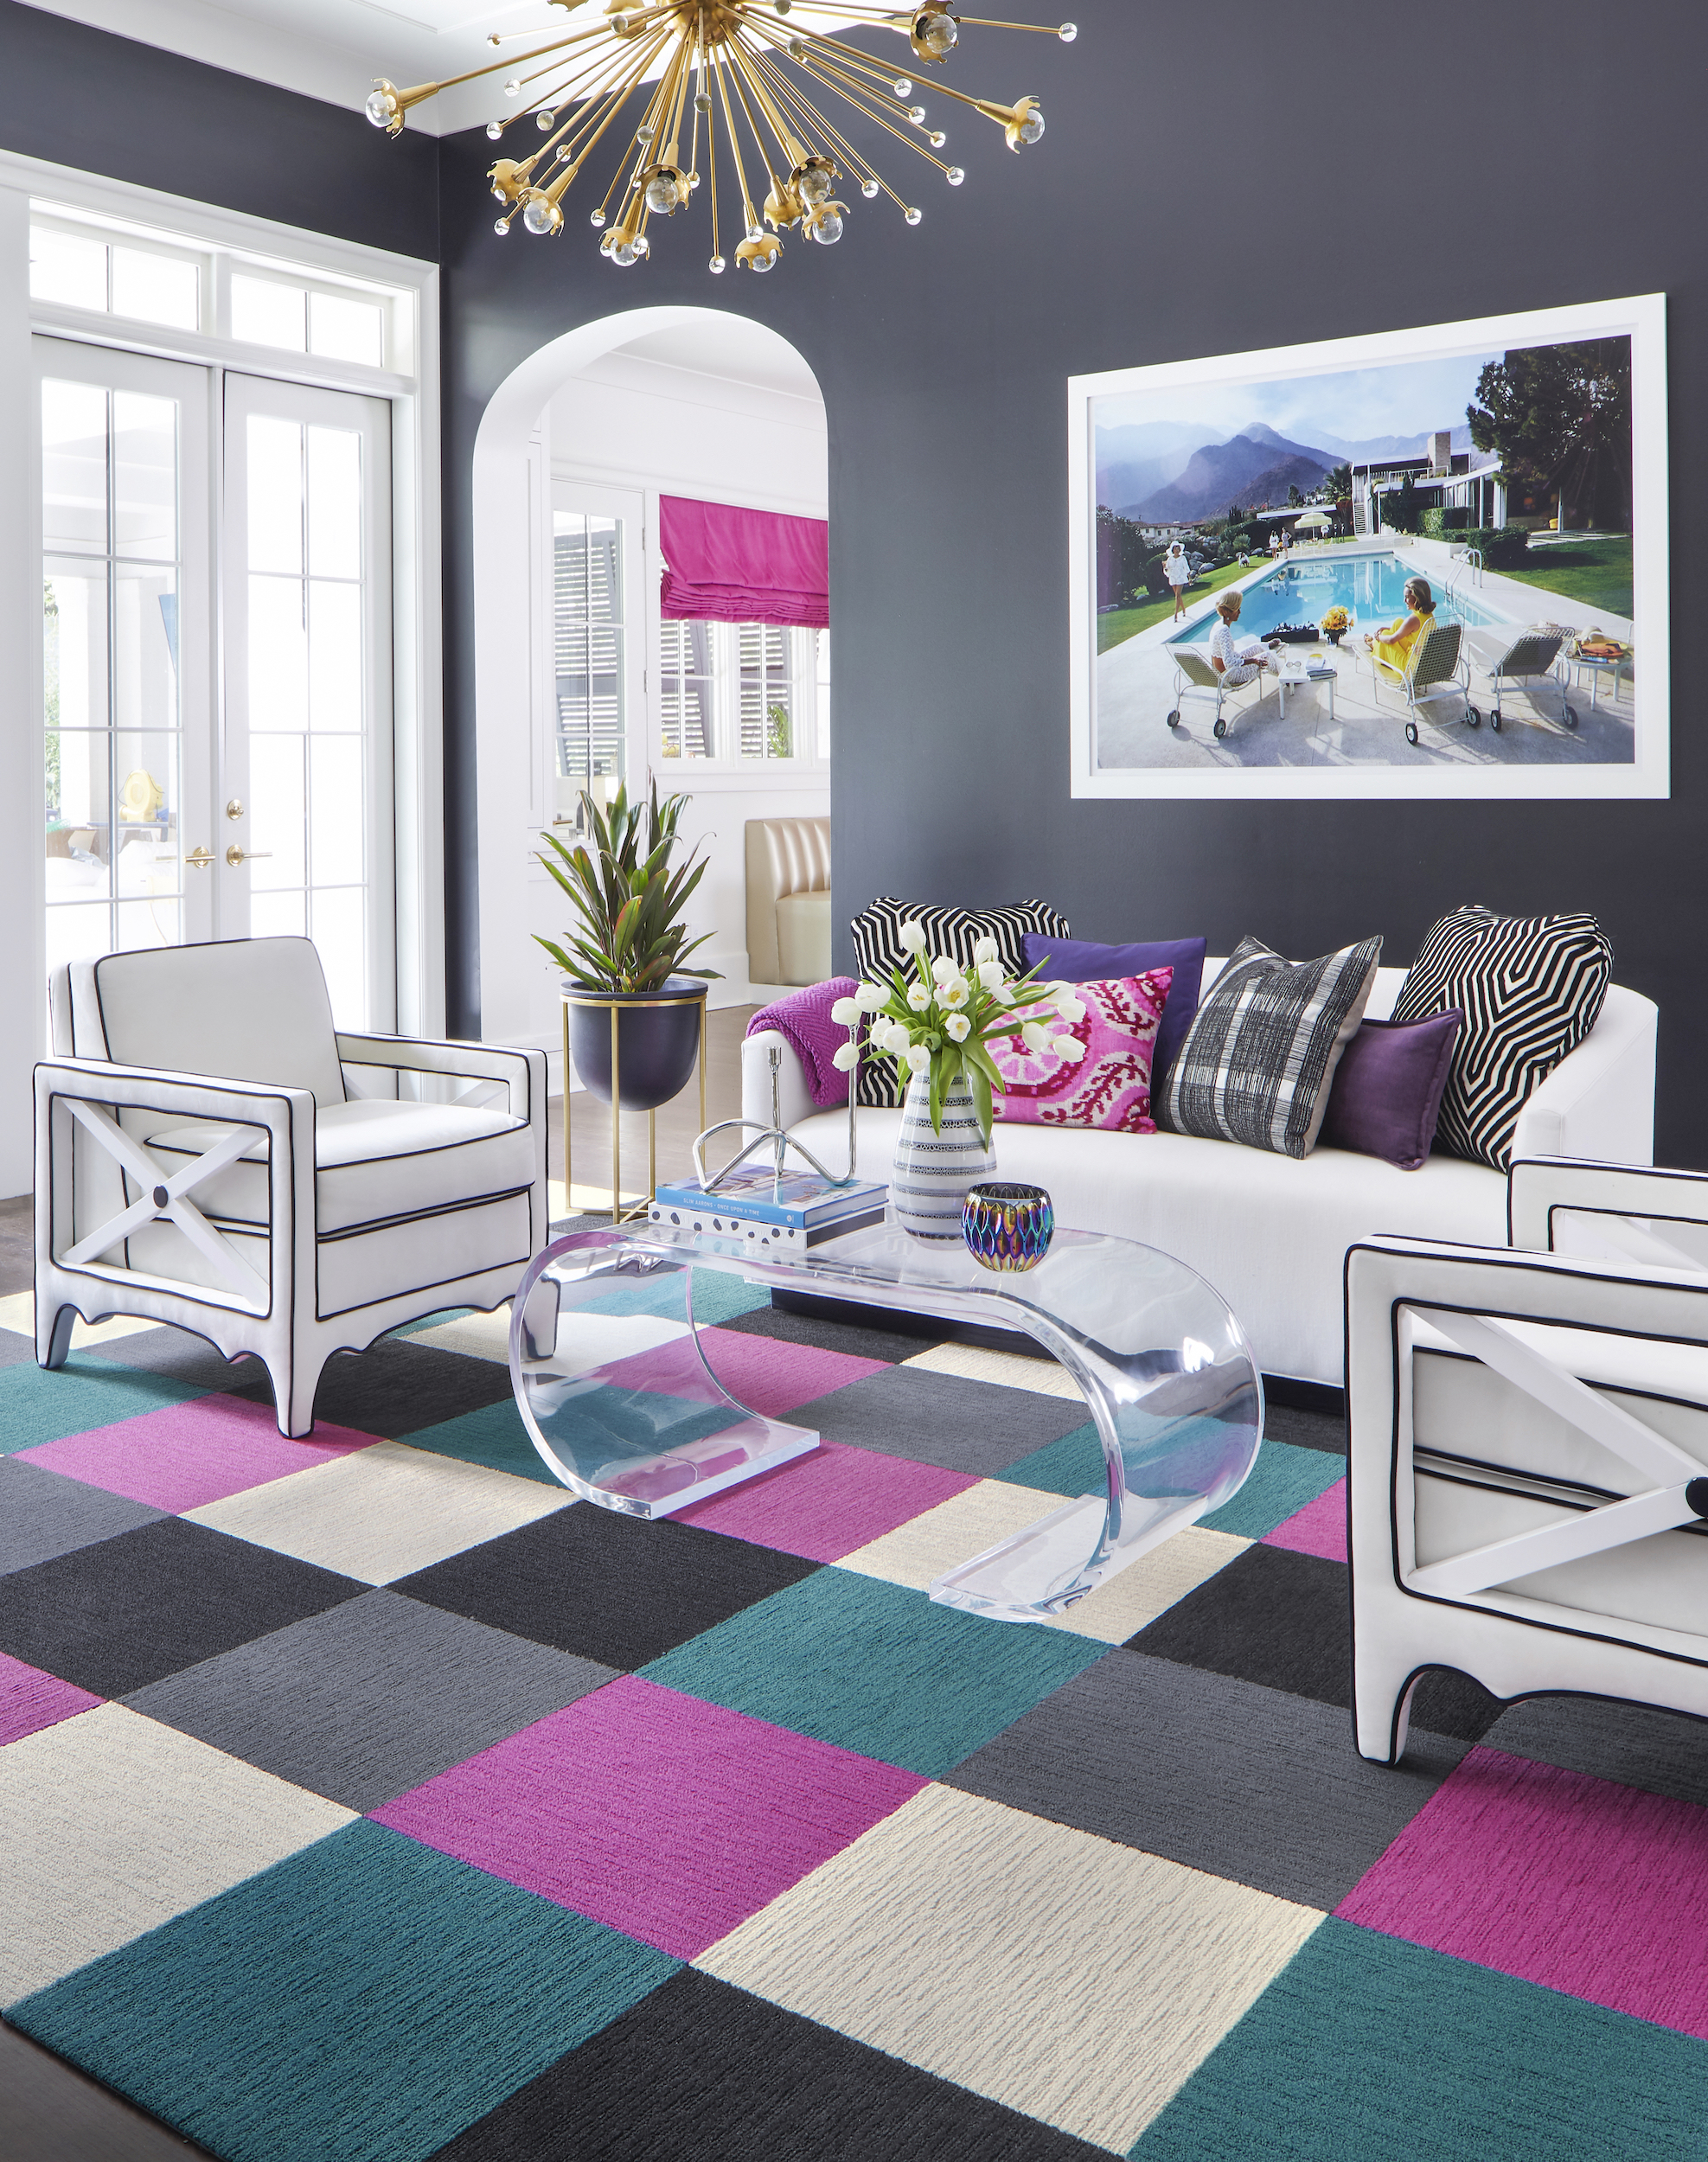 FLOR Made You Look area rug in Bone, Black, Magenta, Slate, and Turquoise, a white couch, purple, pink, and black pillows, white chairs, and a clear table.